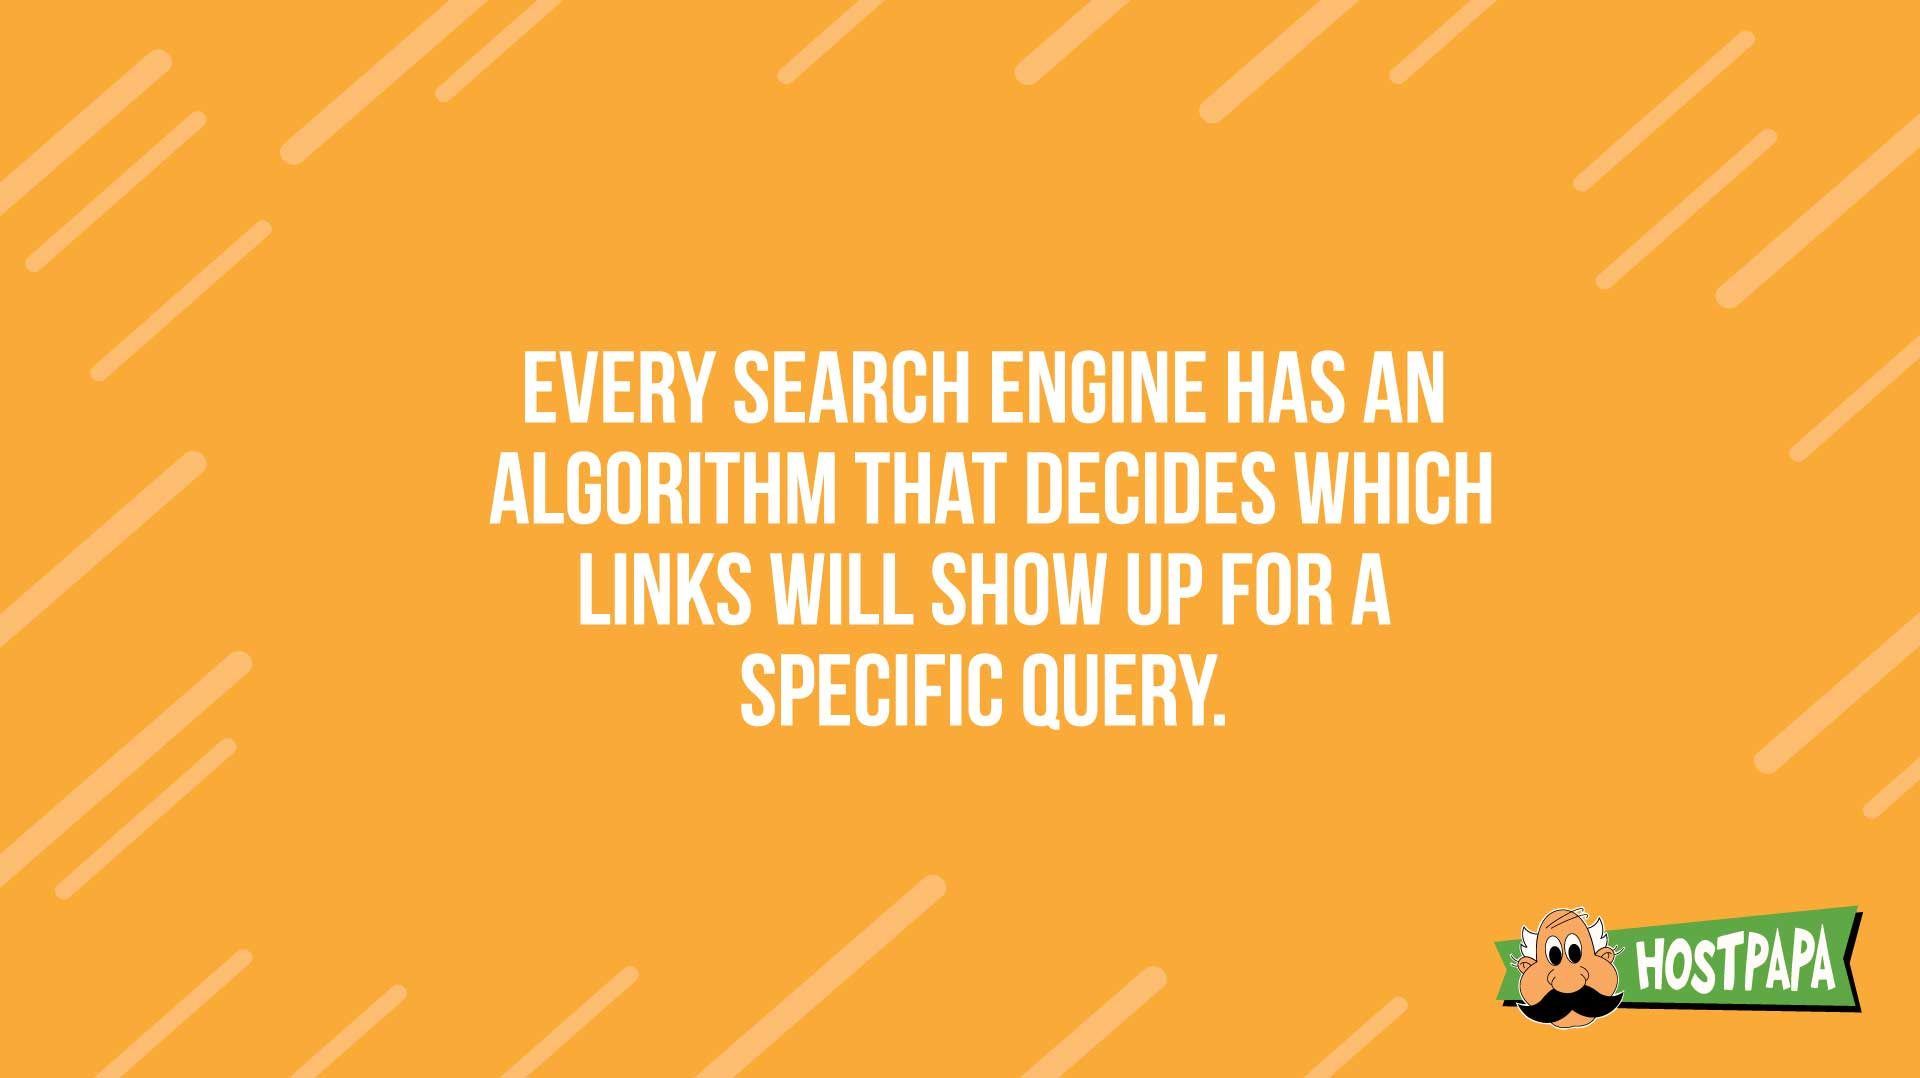 Every search engine has an algorithm that decides which links will show up for a specific query.